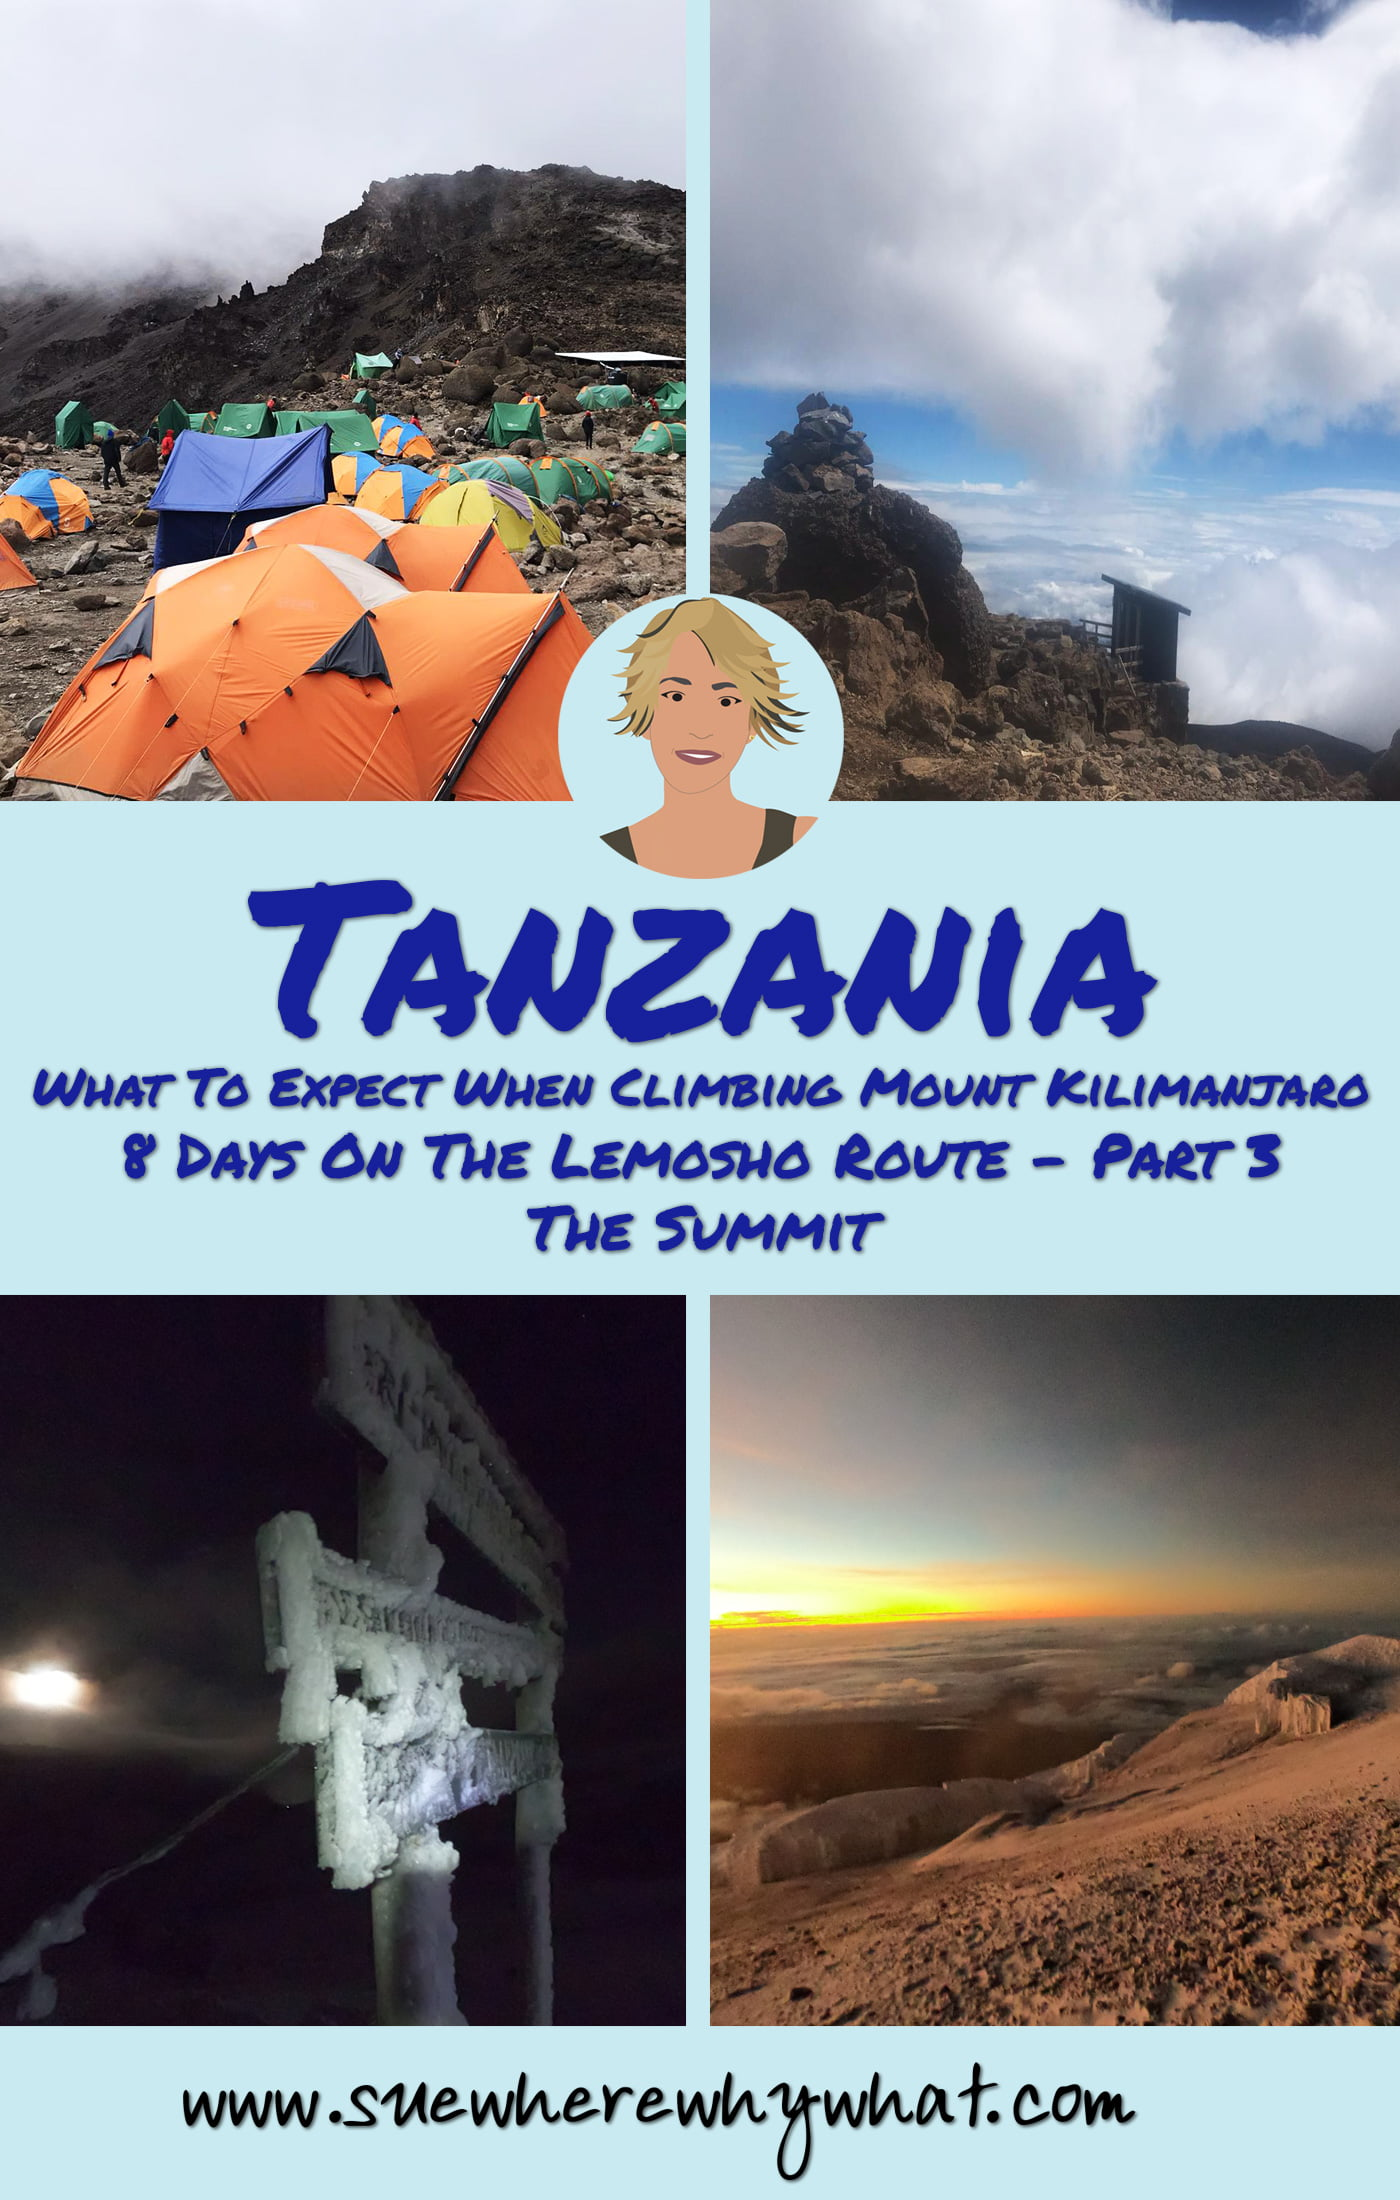 What To Expect When Climbing Mount Kilimanjaro. 8 Days on the Lemosho Route - Part 3 The Summit